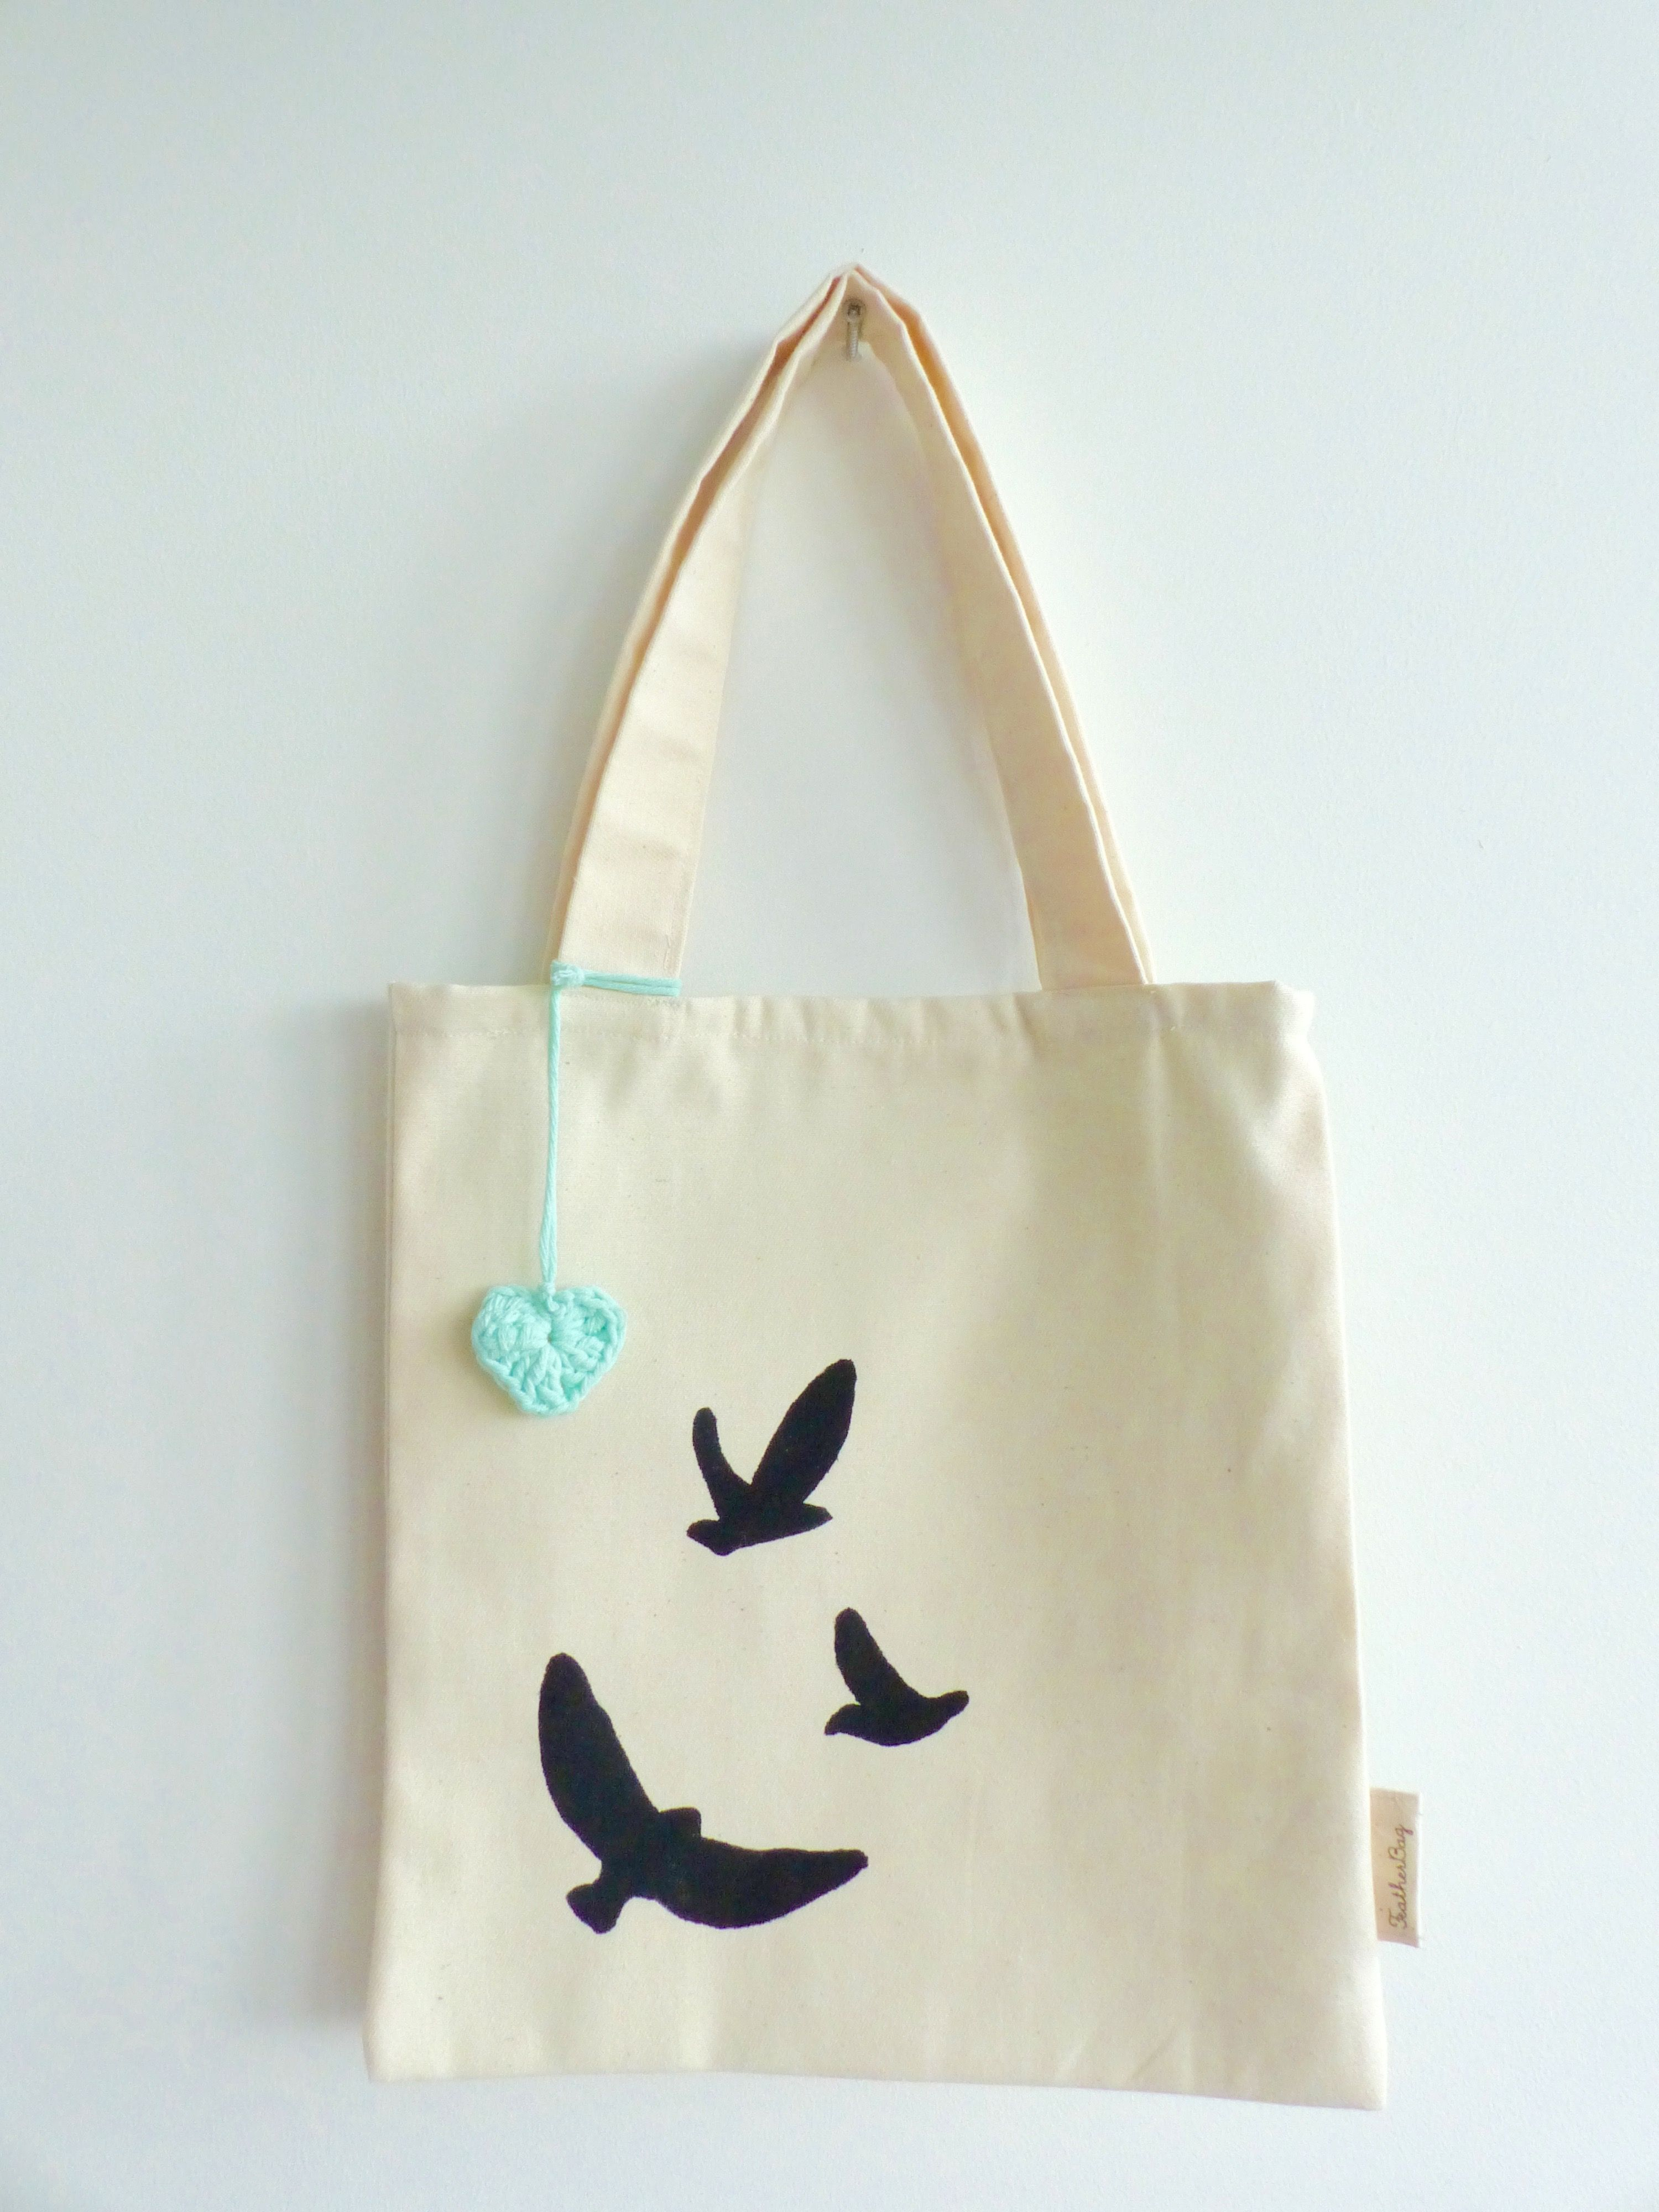 Tote bag birds by Featherbag